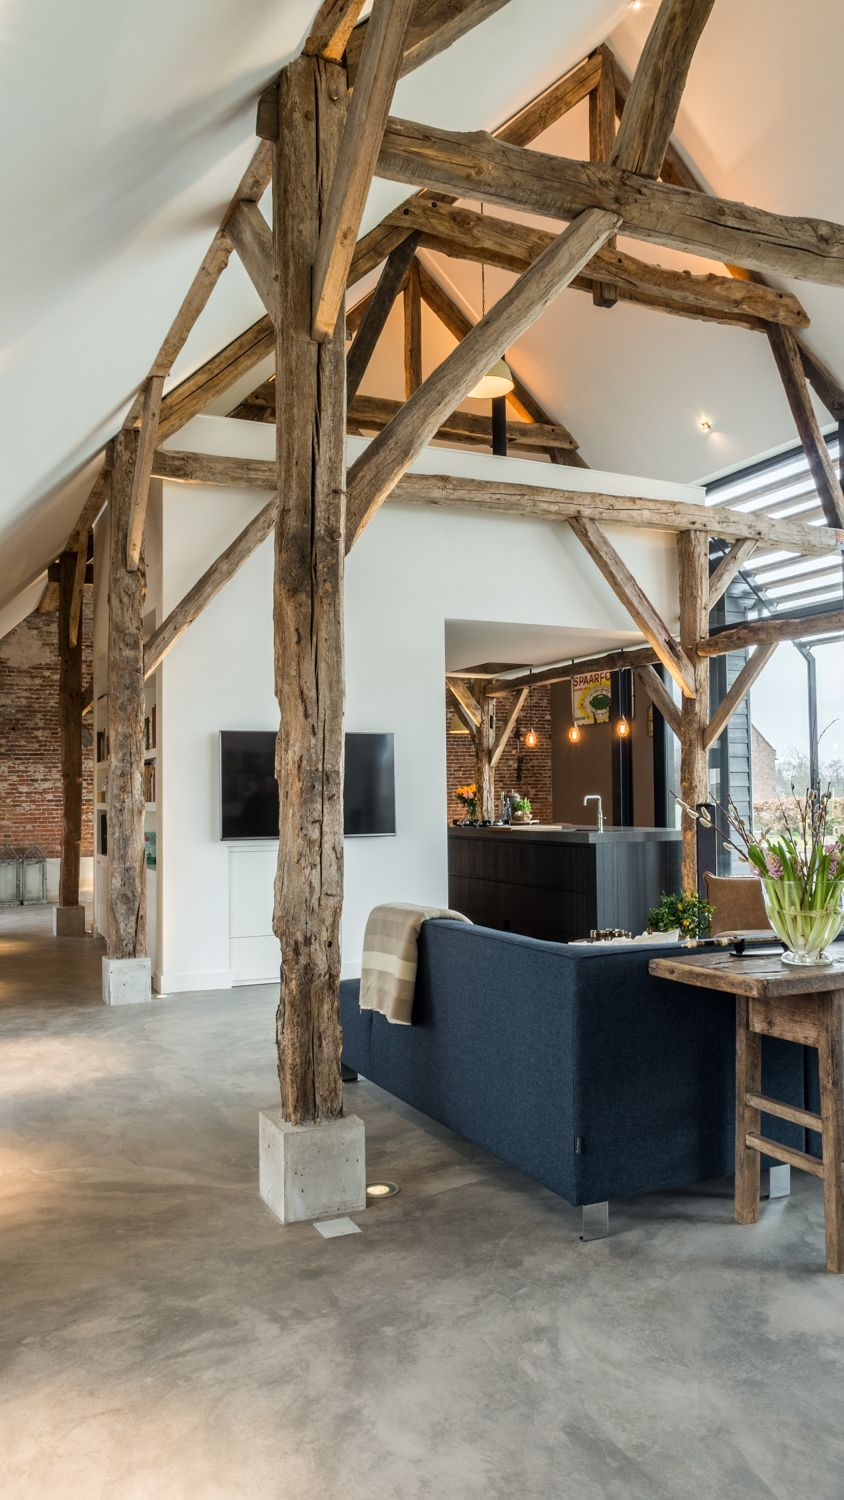 maretti woonboerderij abcoude interieurs converting an old farm into a warm industrial farmhouse big view on an old brick wall original wooden beams and the beautiful area around the